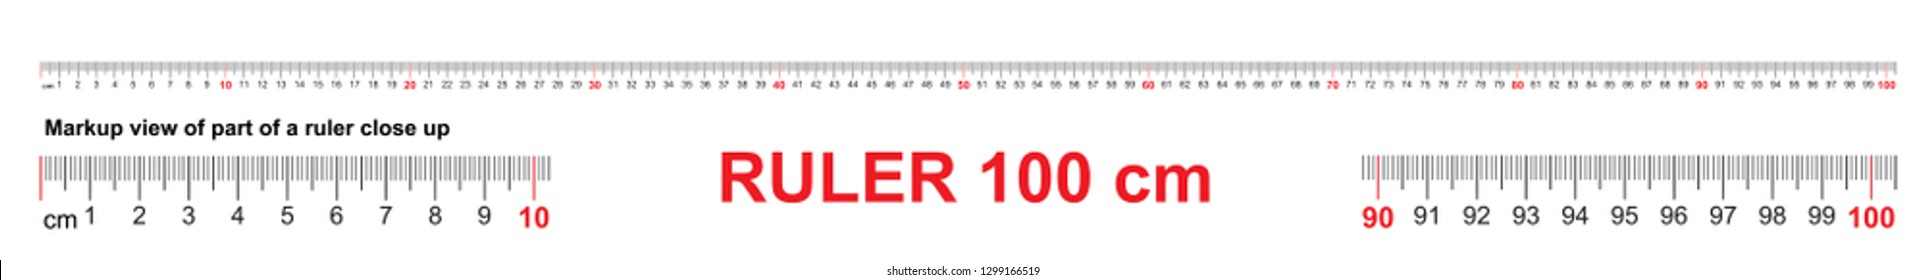 Meter Ruler Stock Illustrations, Images & Vectors | Shutterstock